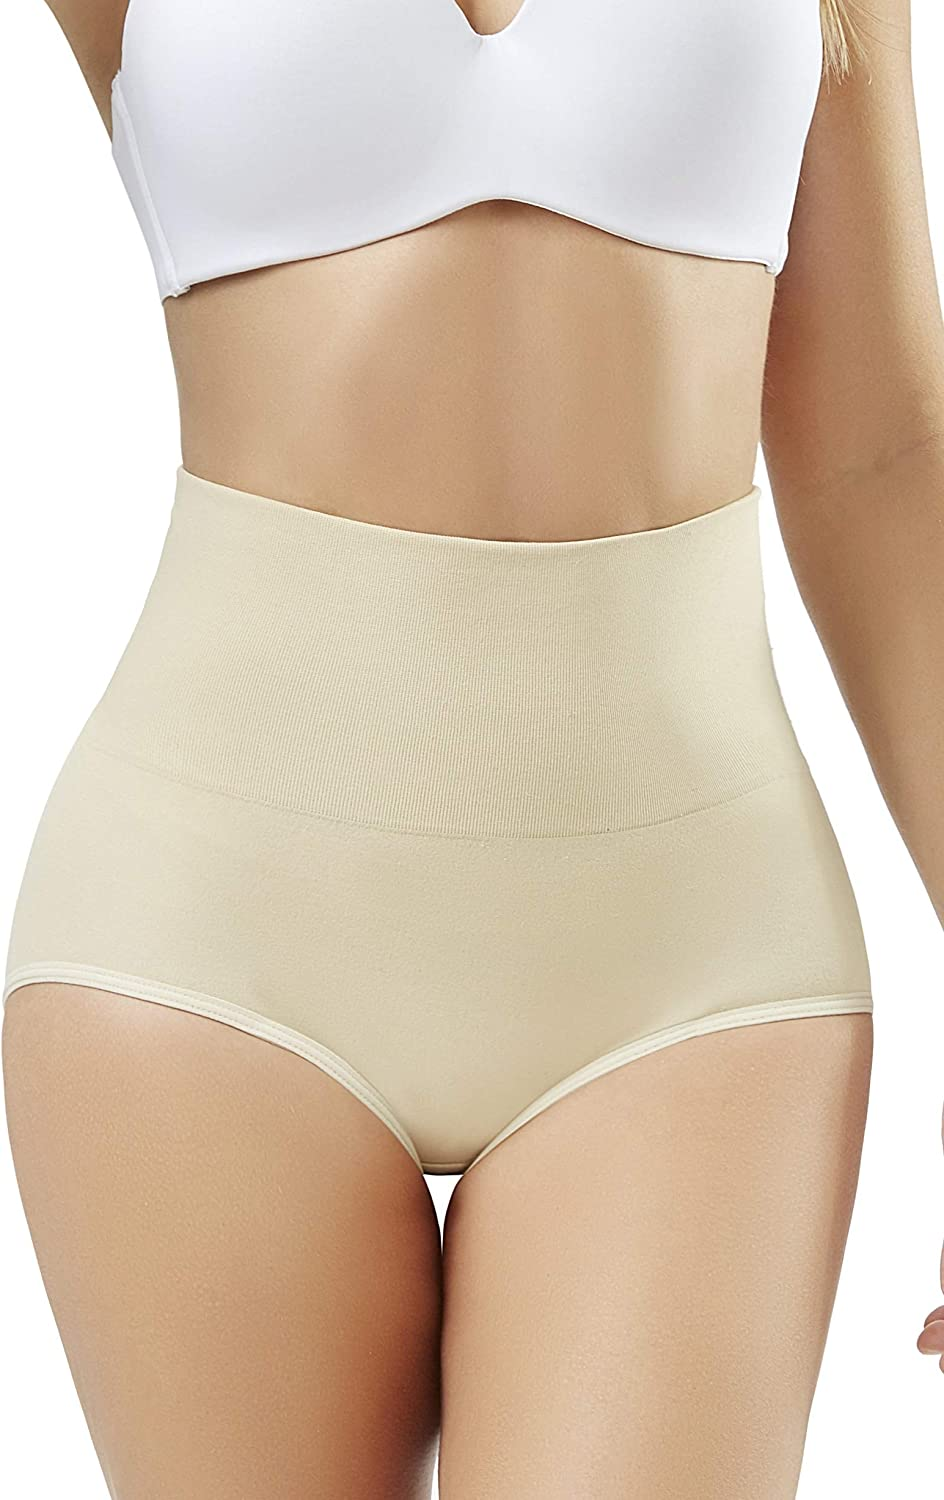 Shapewear Fajas Shaping Panties Enhance Natural Manufacturer regenerated product Brief Lowest price challenge Buttocks